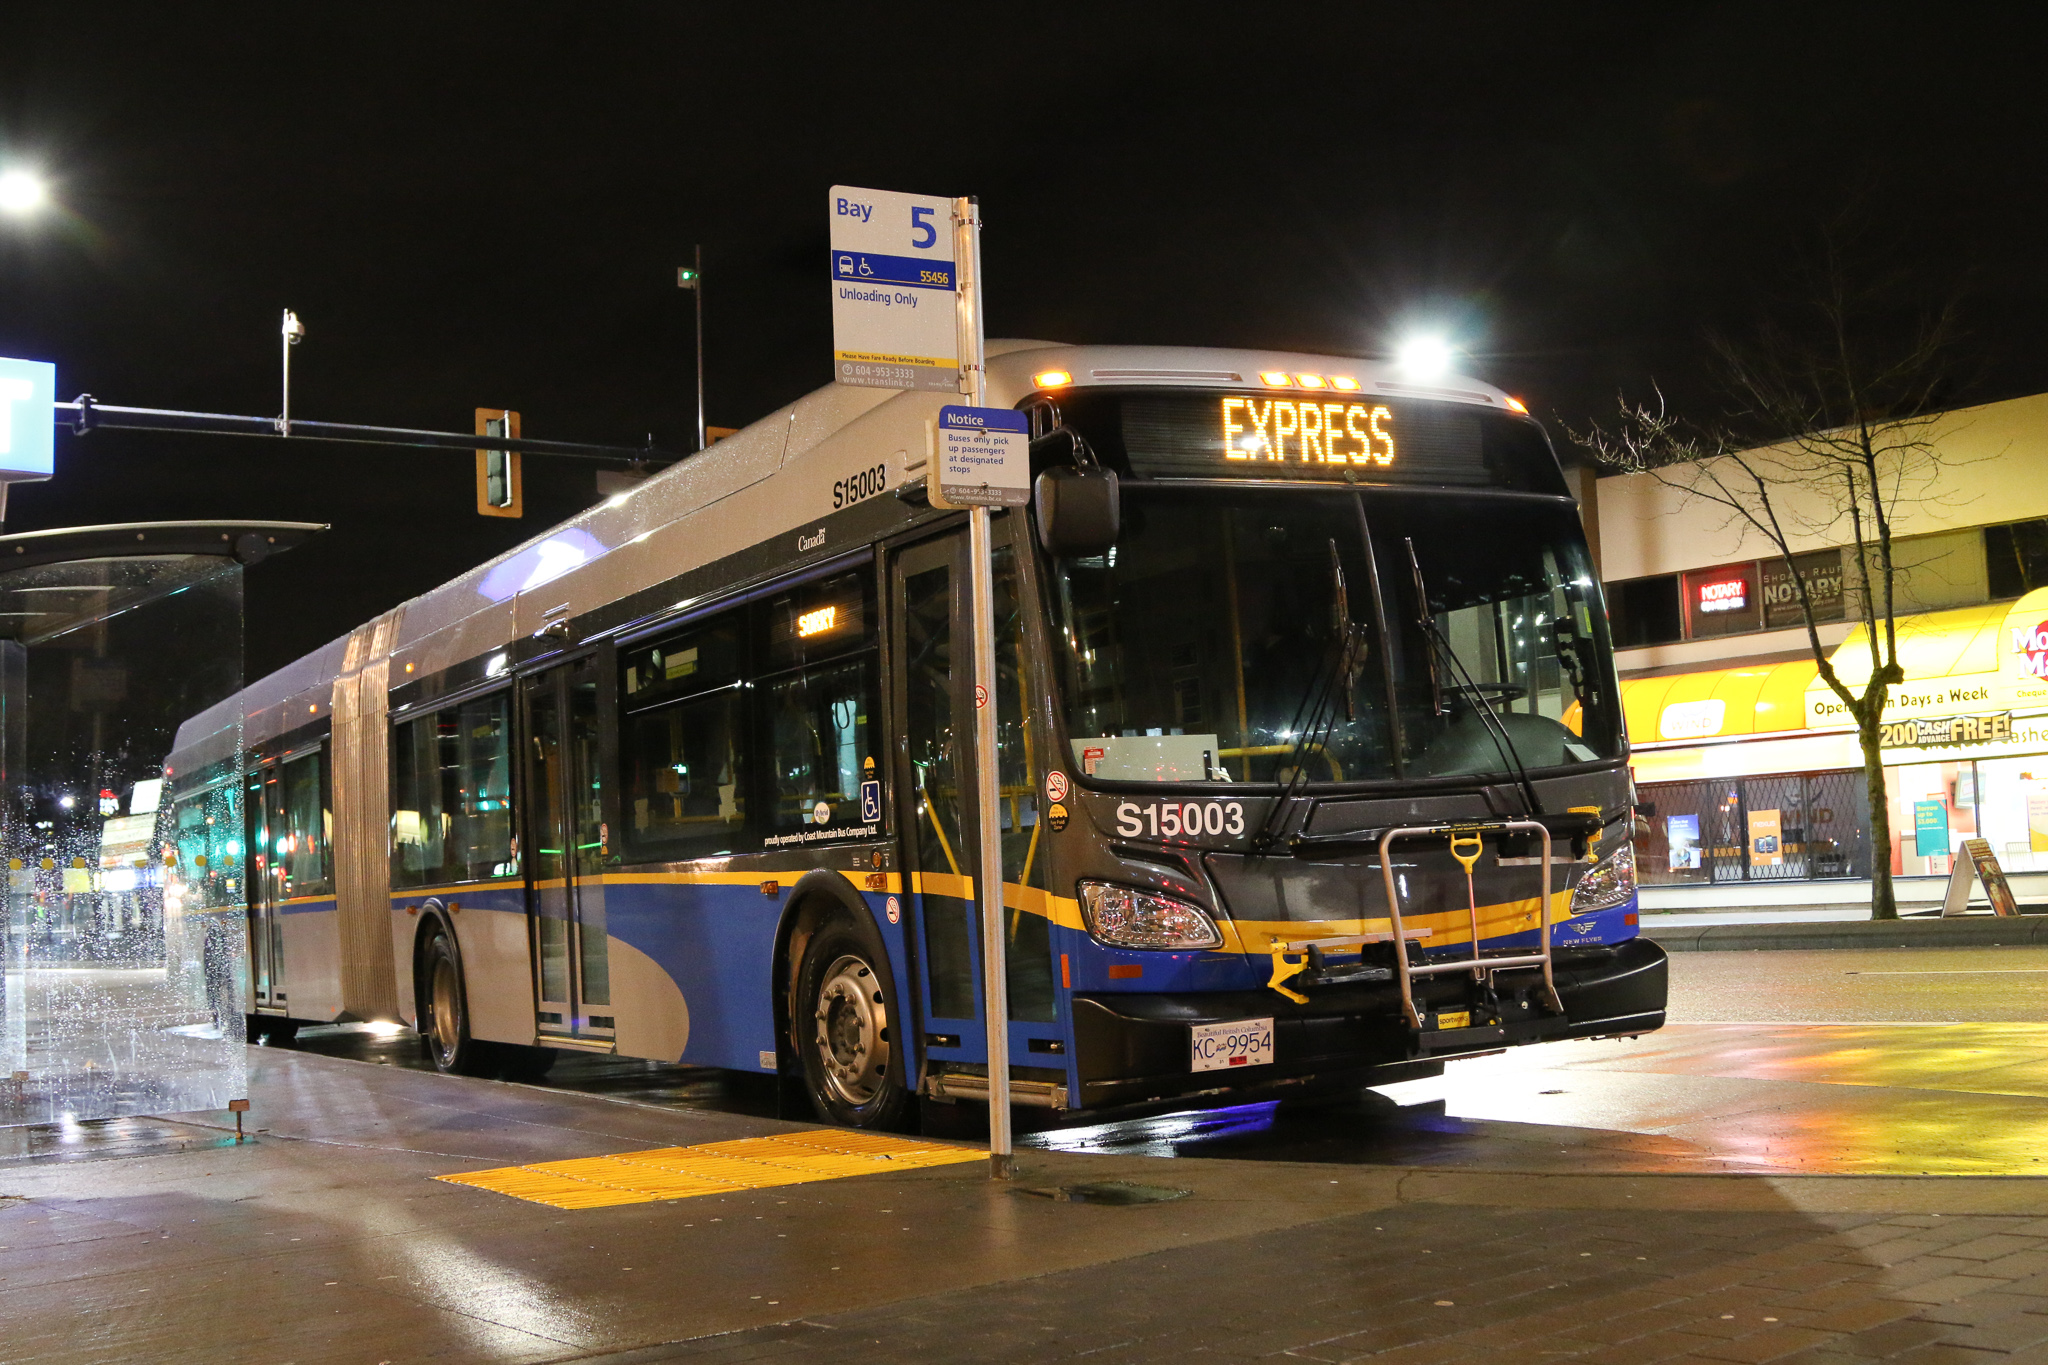 A new batch of New Flyer XDE60 articulated buses